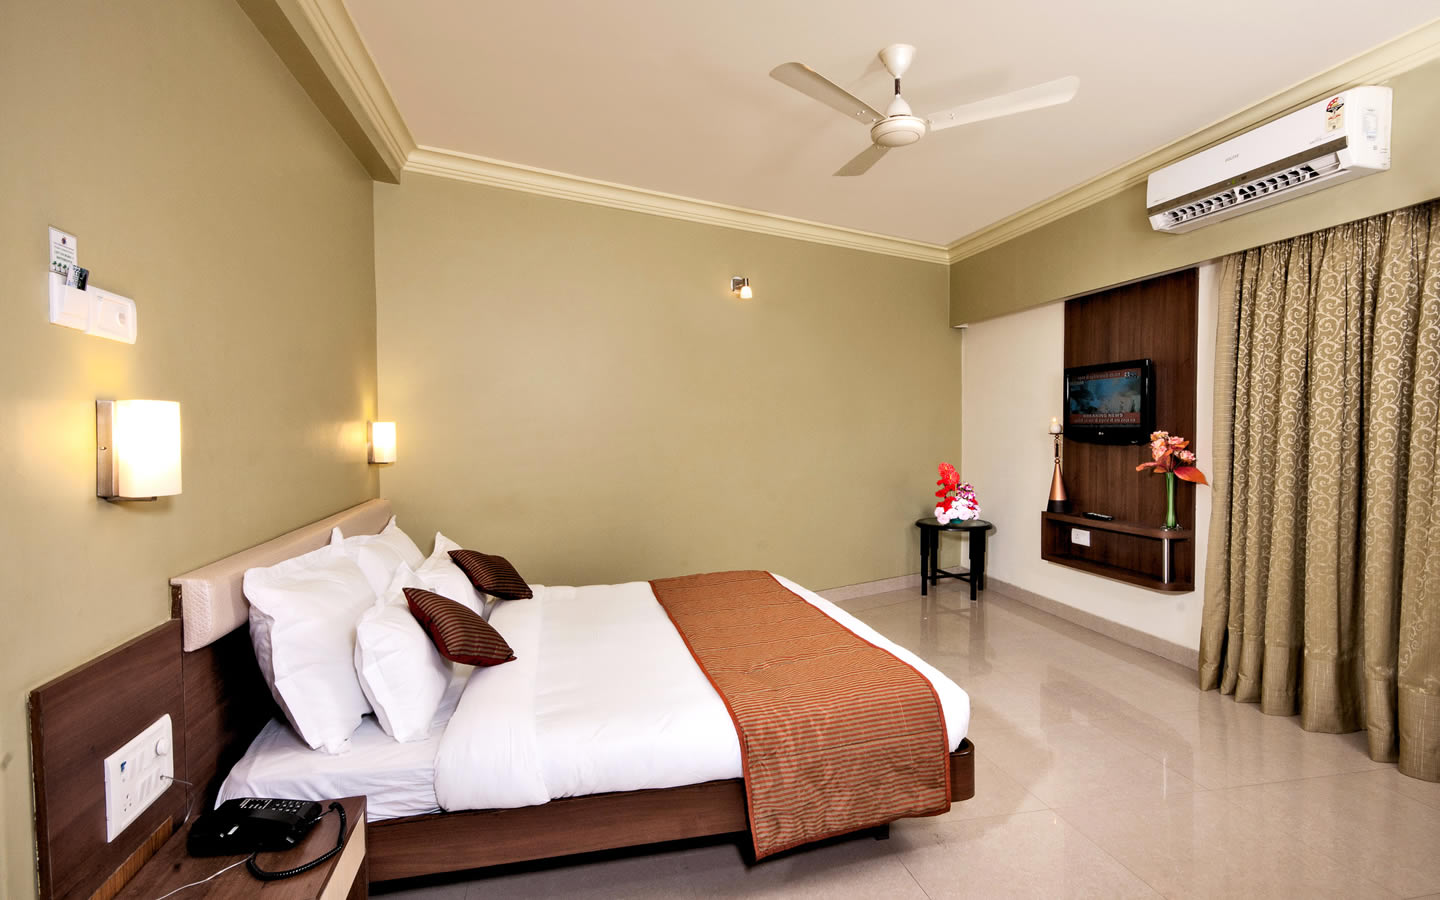 shirdi hotel reservation